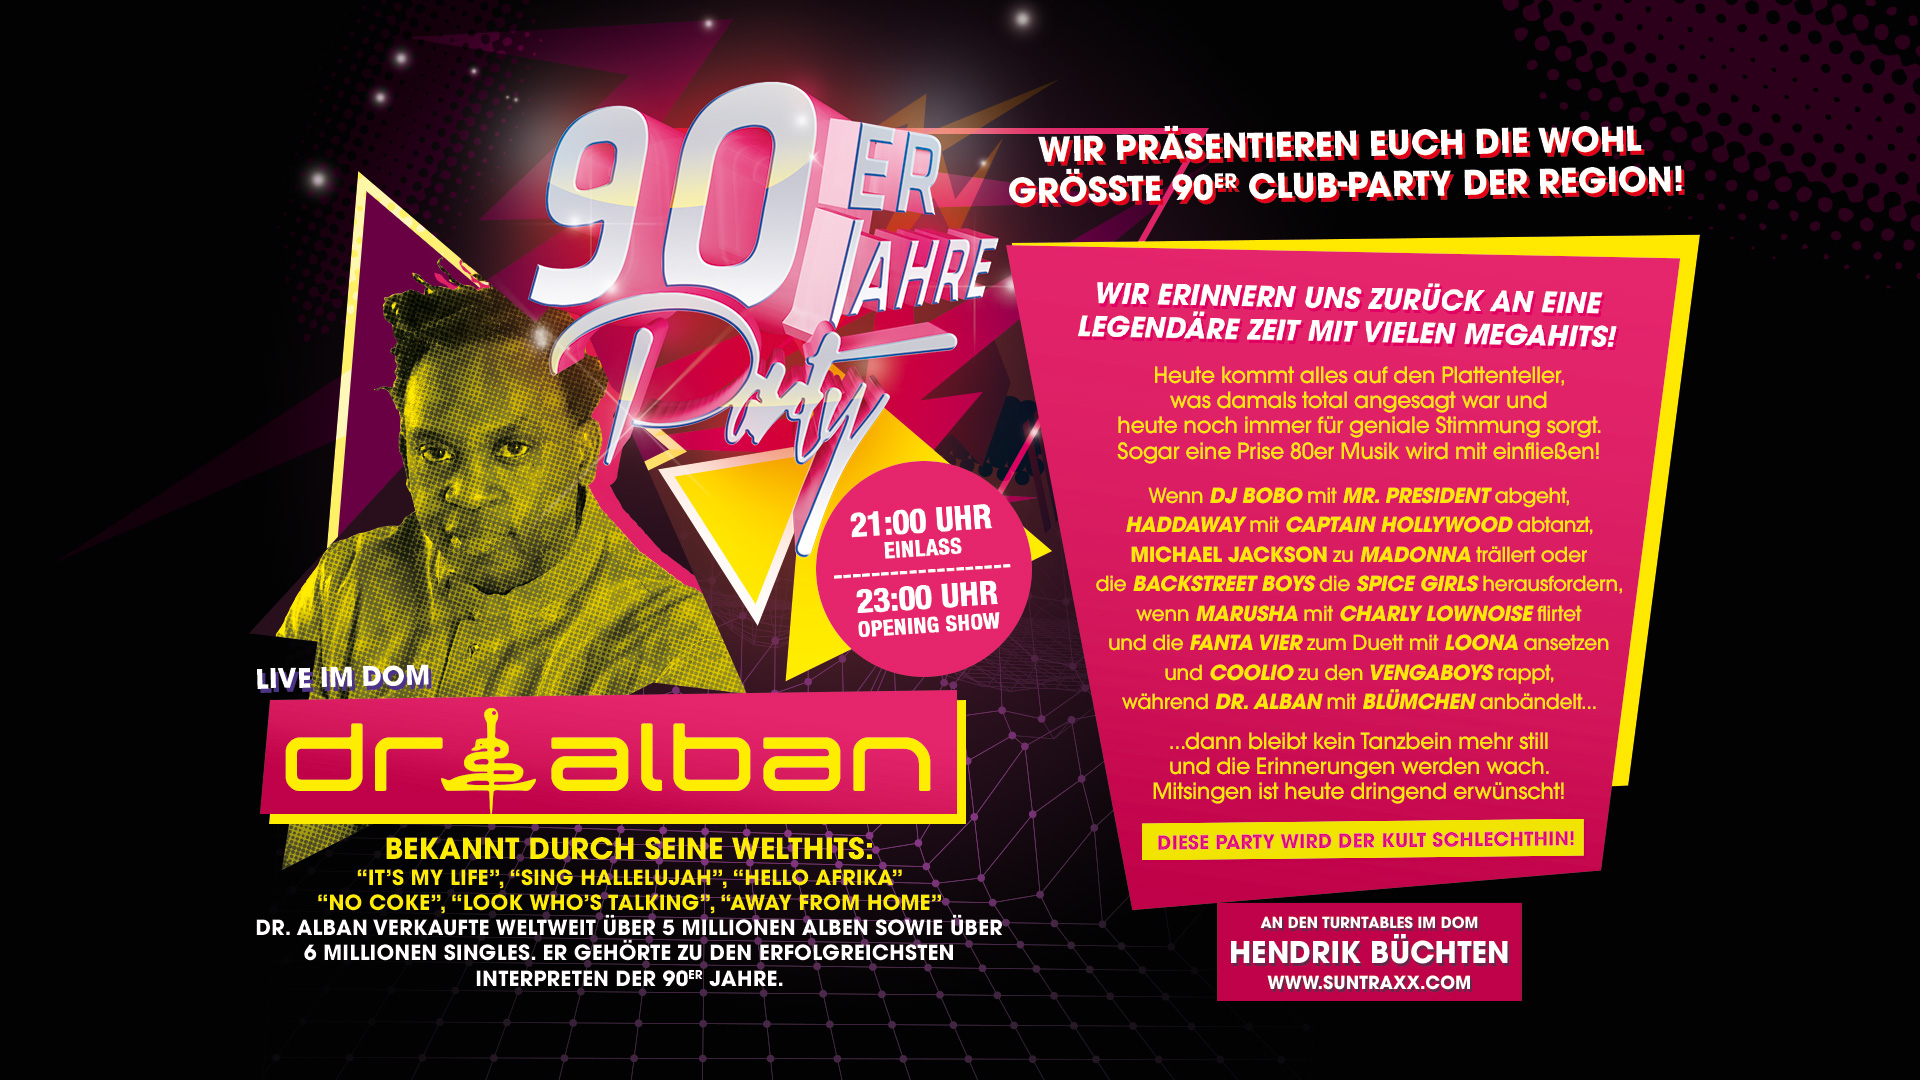 Prater bochum single party